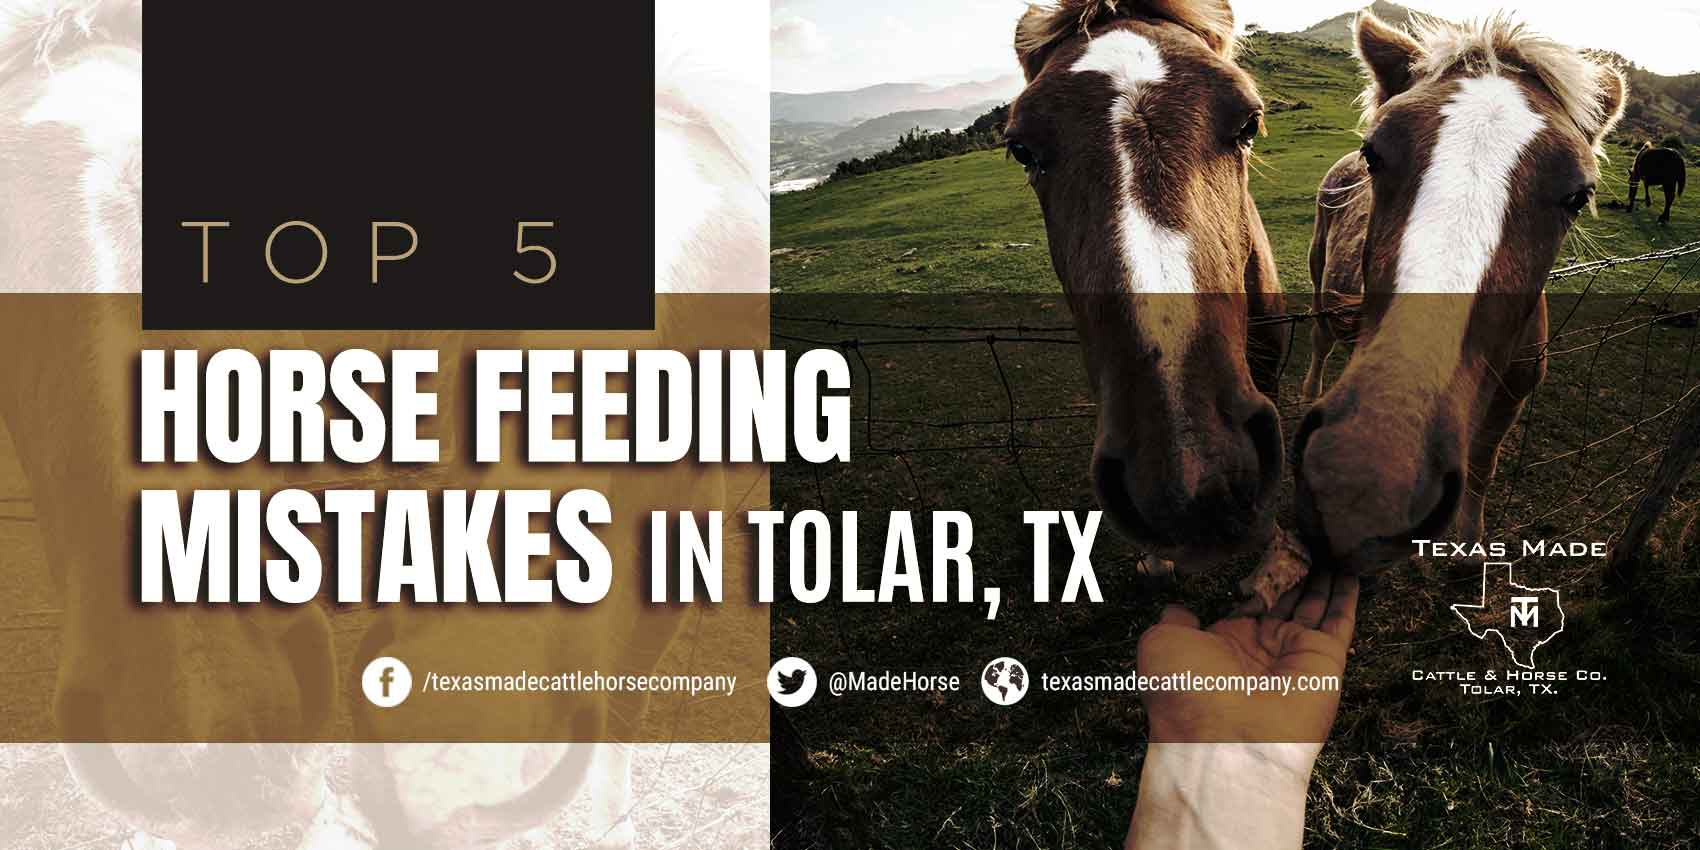 Top 5 Horse Feeding Mistakes in Tolar, TX